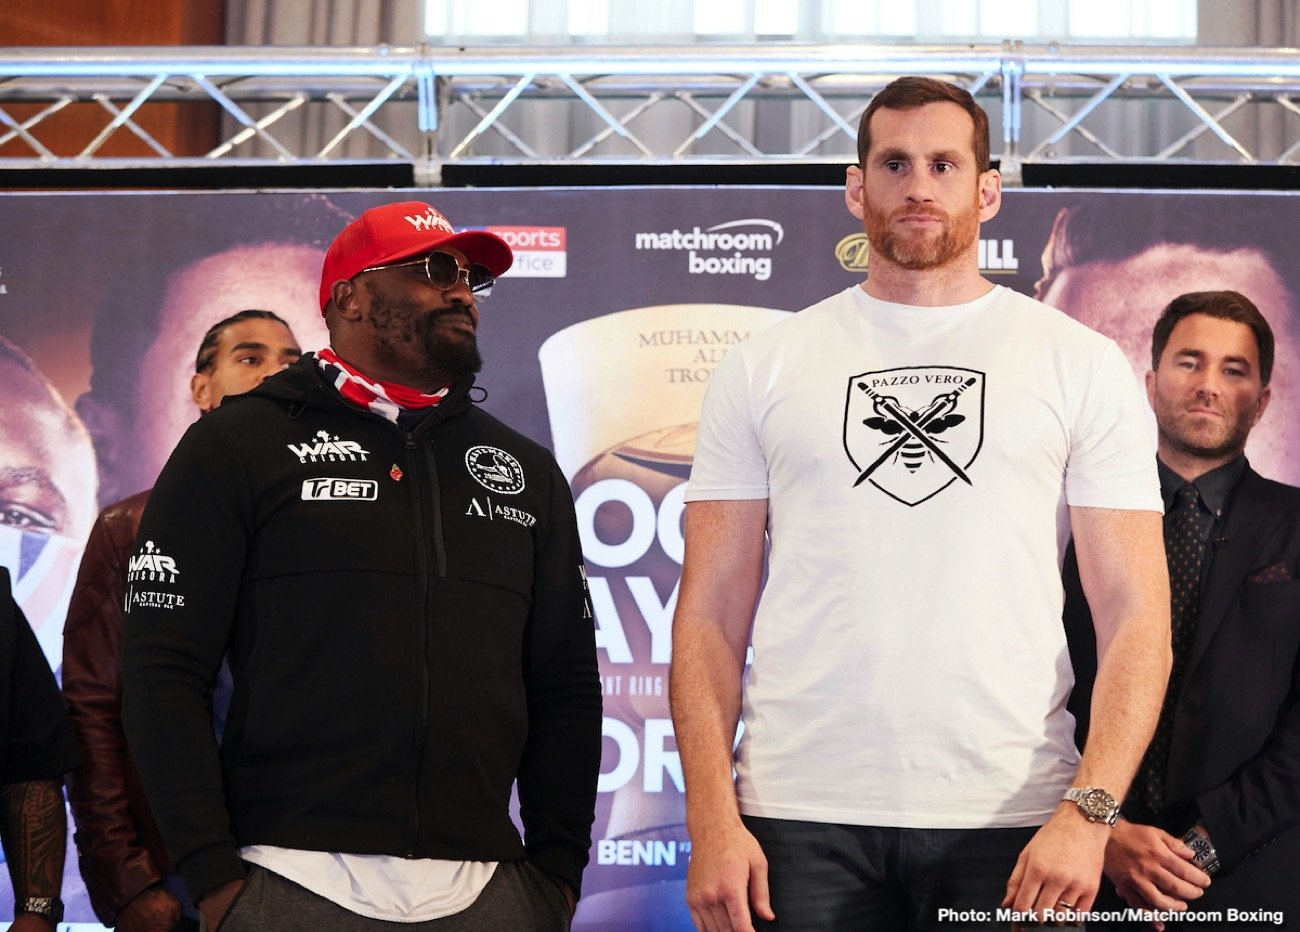 David Price - Derek Chisora - Finchley, England - 31-9, 22 KOs – fighting David Price for the vacant WBO Inter-Continental Heavyweight title: